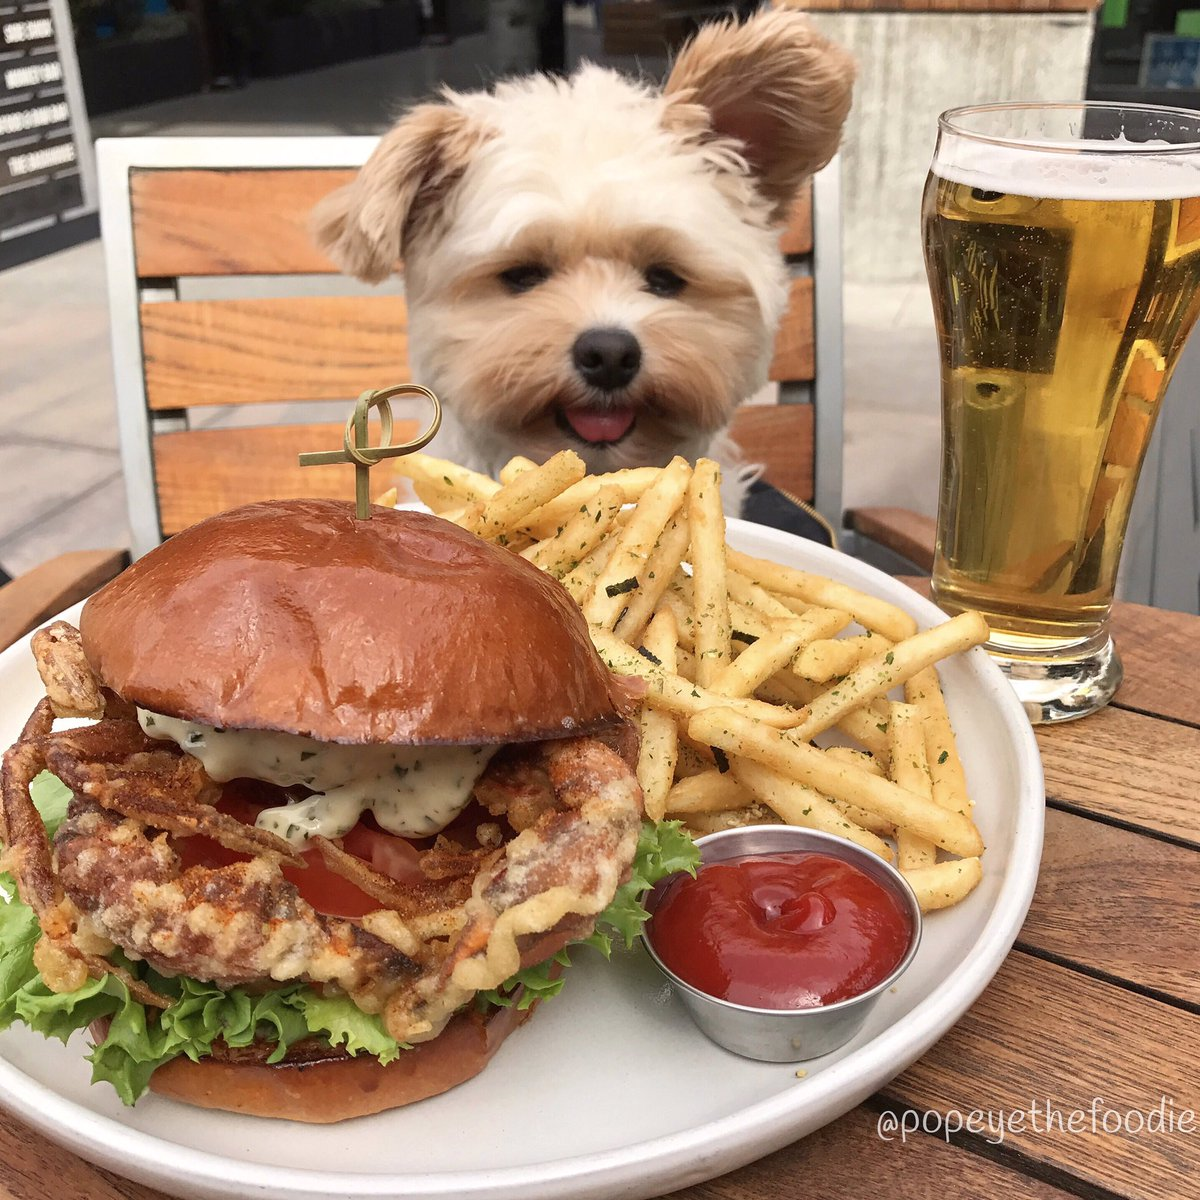 Popeye The Foodie On Twitter The Love For Fries Is Real The Soft Shell Crab Sandwich Fries And Beer At Monkey Bar In Westfieldsantaanita Arcadia Https T Co Kbiywpakiz